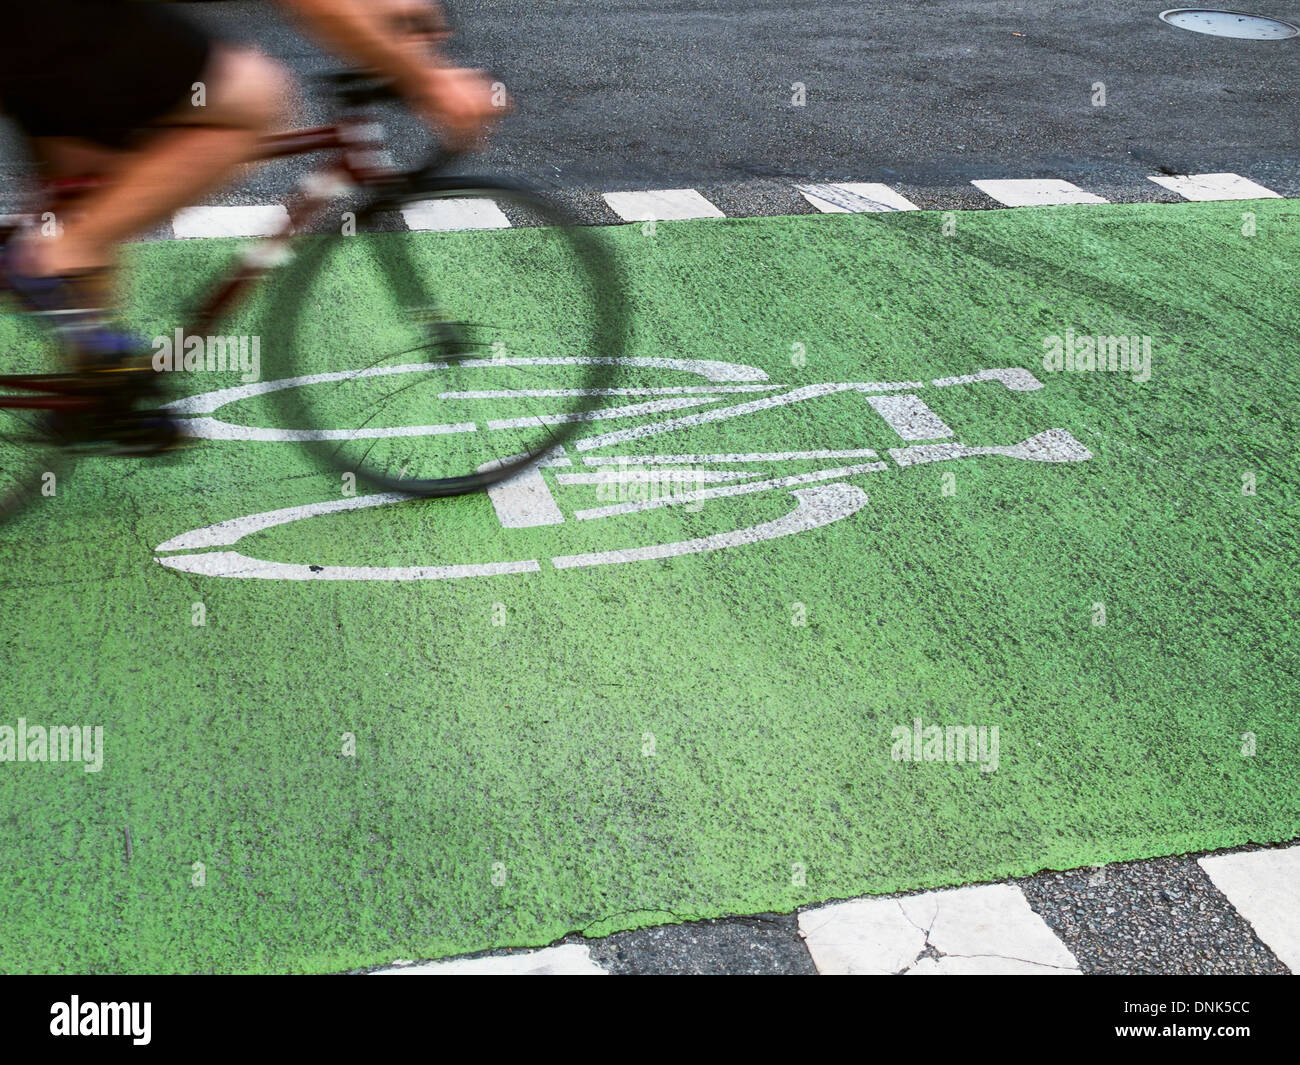 A lone cyclist rides their bike in a dedicated bike lane. - Stock Image